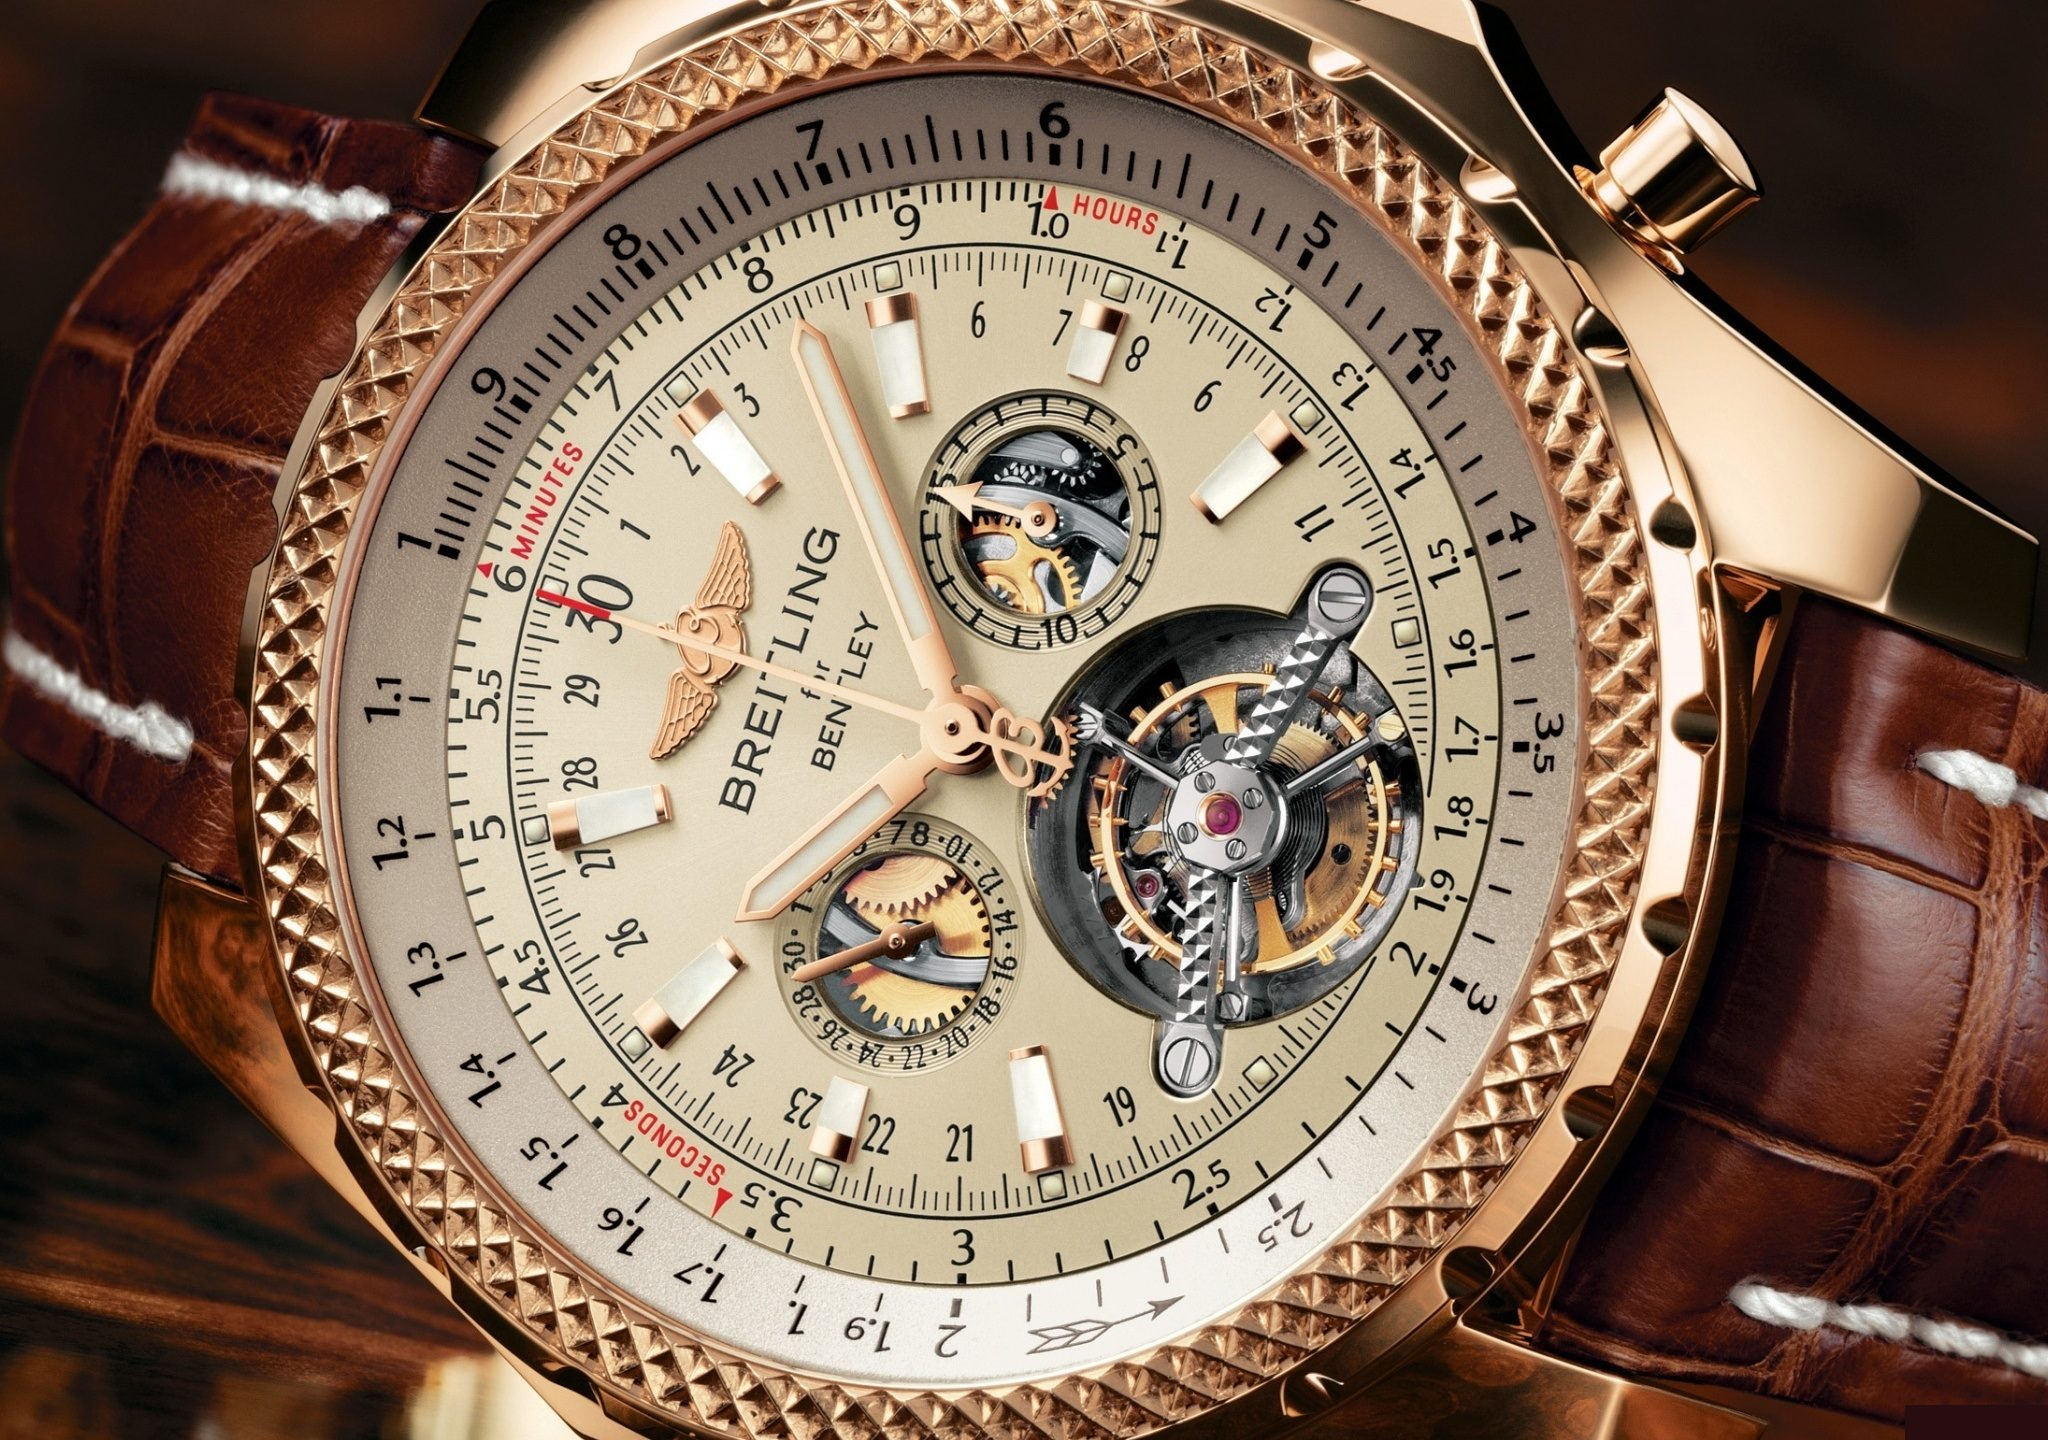 All breitling watches pictures Breitling Models - All Series Watches - Breitling Source